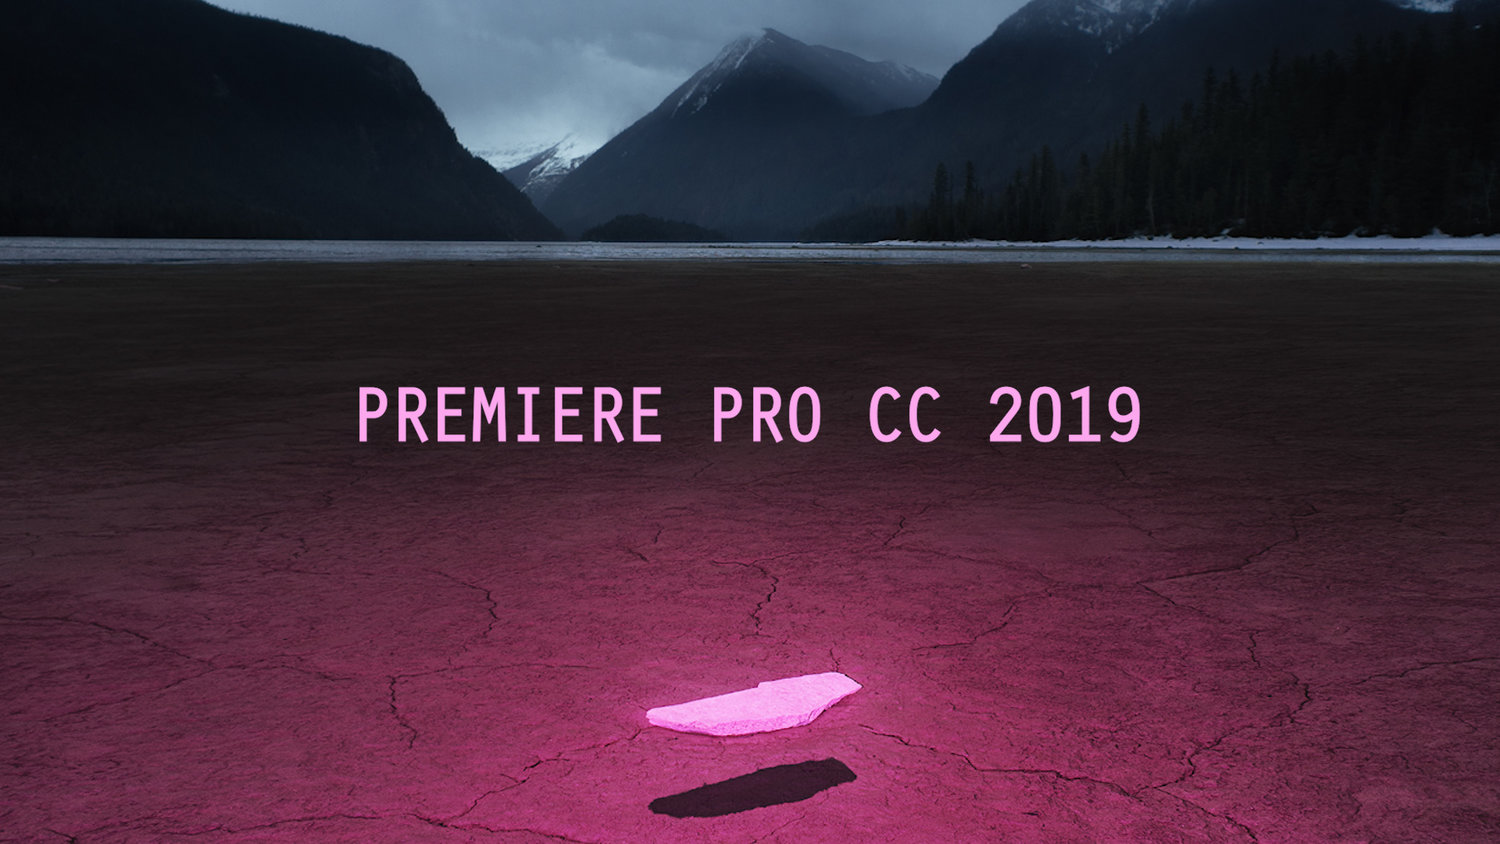 Adobe Drops Premiere Pro CC 2019 (13.0) - Premiere Pro CC and Premiere Rush CC headline the release of Creative Cloud 2019.